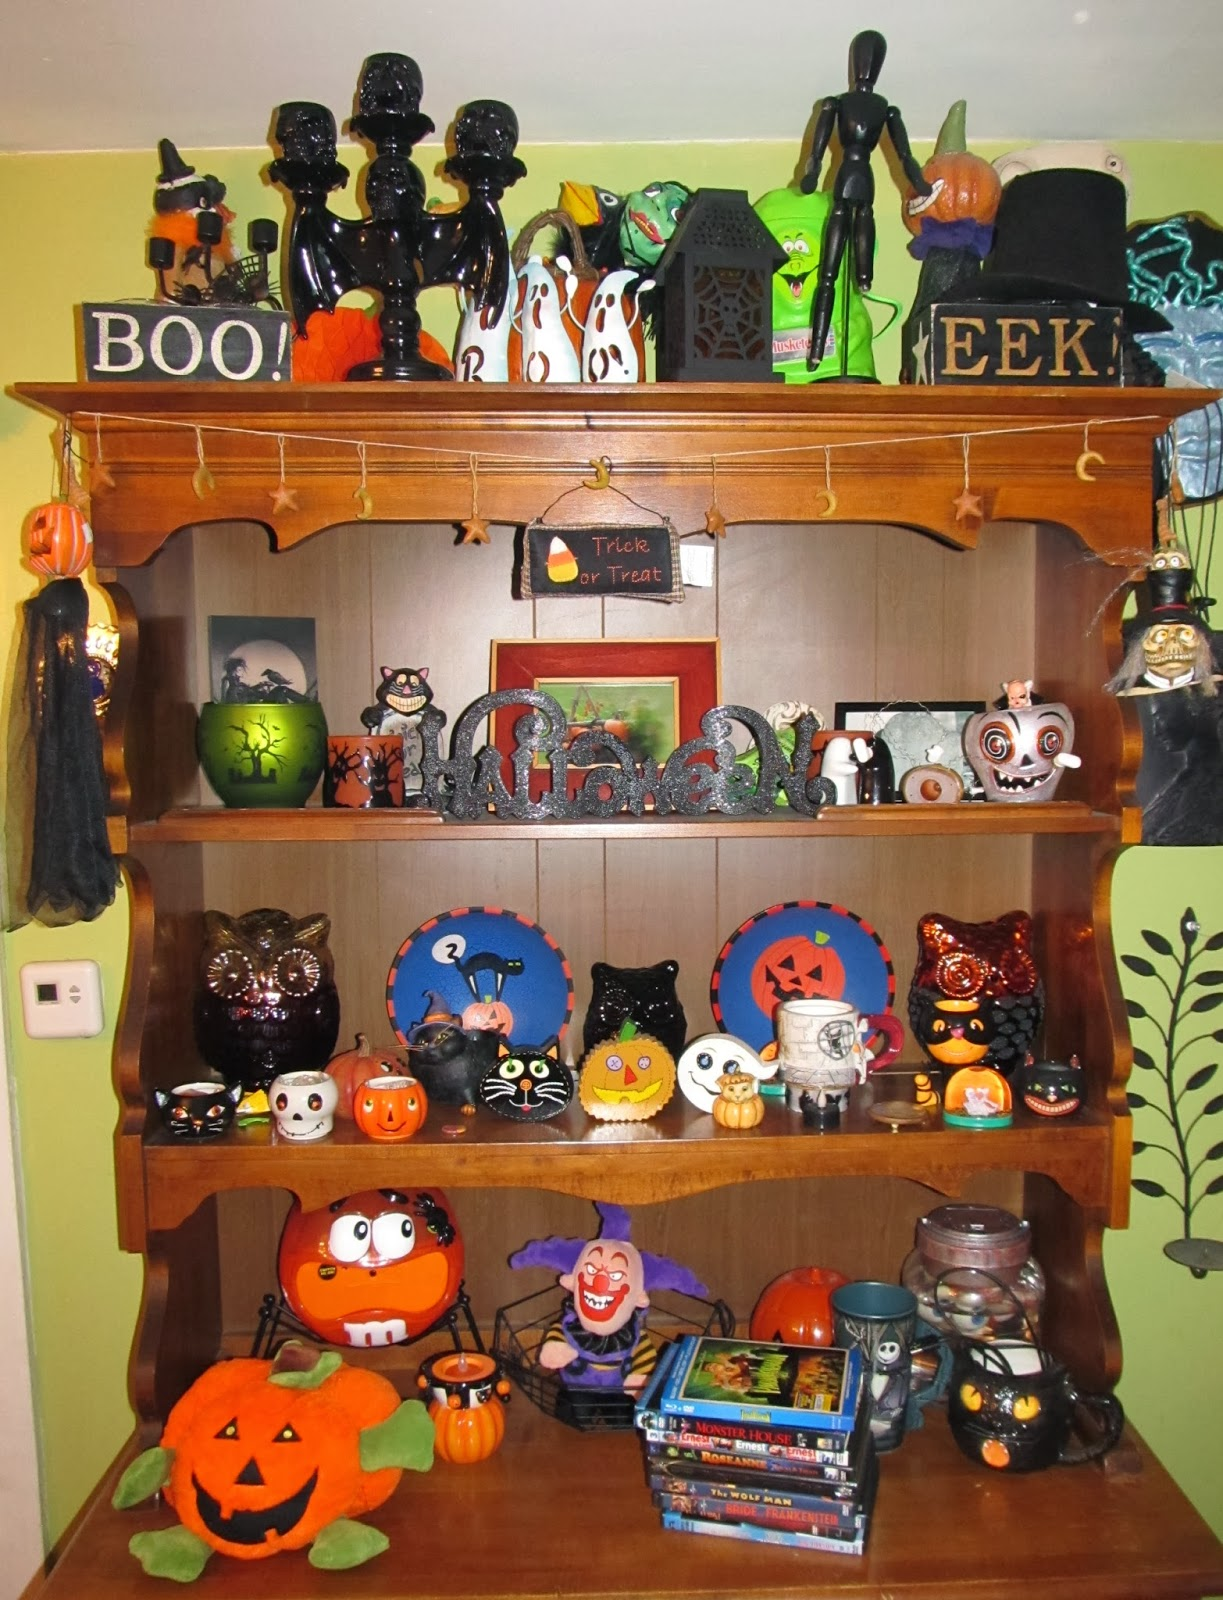 Here We Have The Halloween Hutch, Which Is Decked Out In Even More Halloween  Decor. Just Realizing Now That The Top Shelf Of The Hutch Is All Jacked Up  And